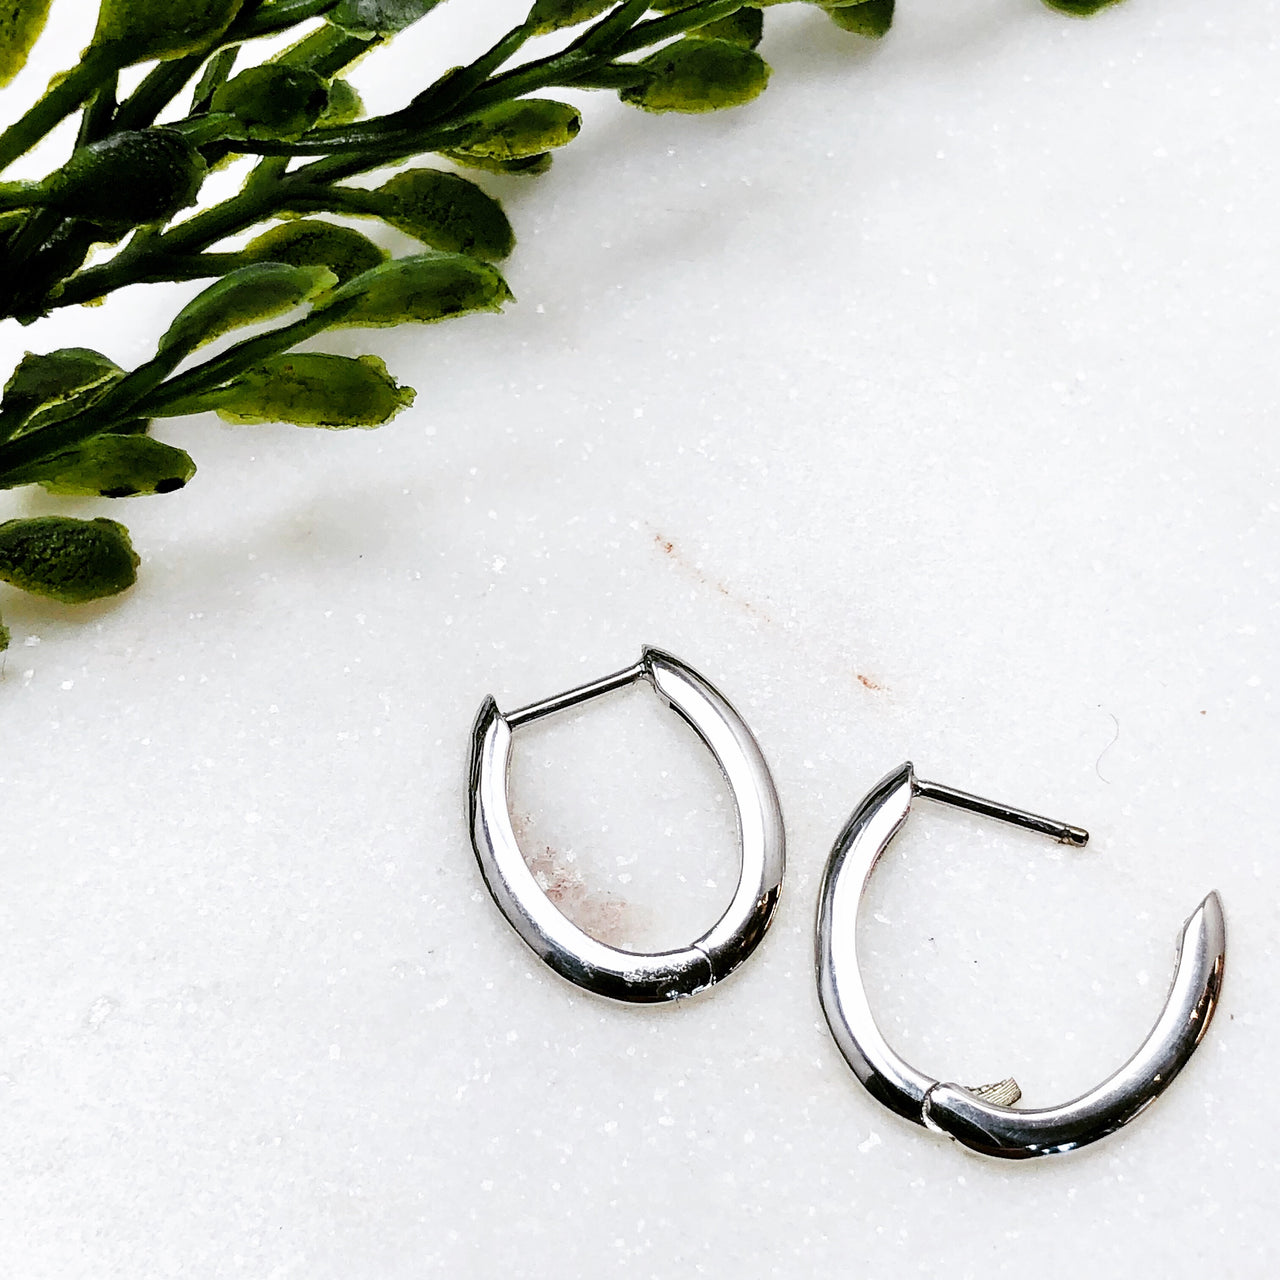 14K White Gold Hinged Hoop Earrings.